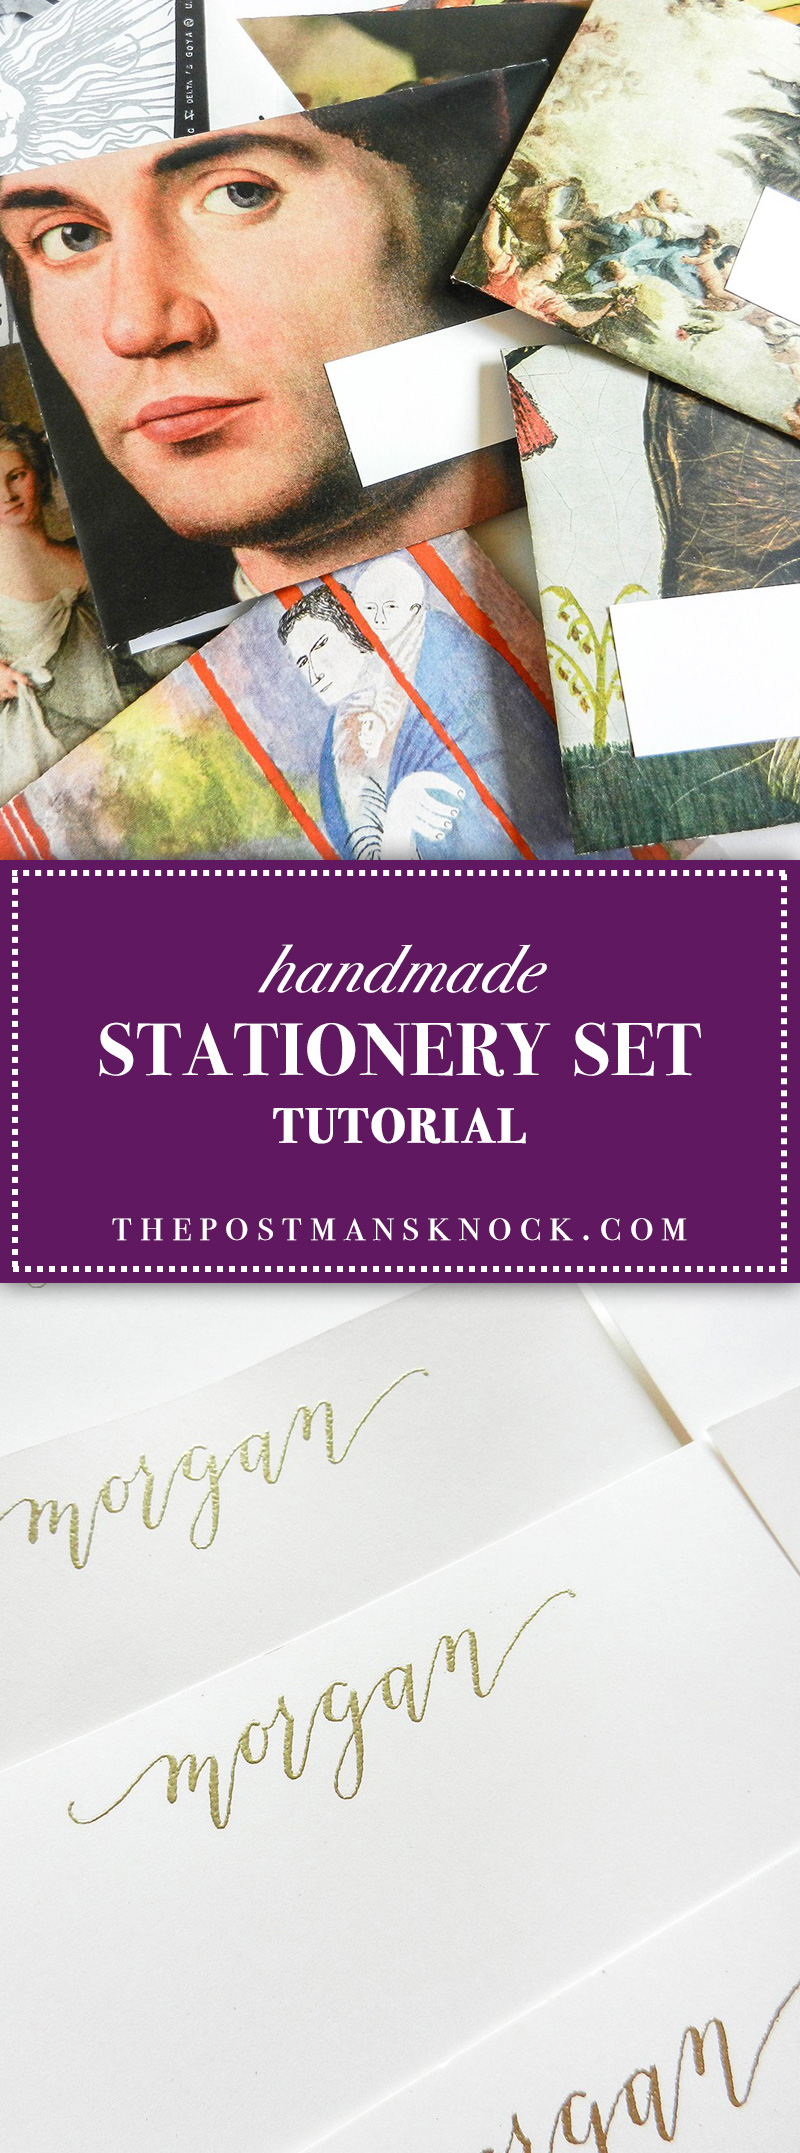 Handmade Stationery Set | The Postman's Knock